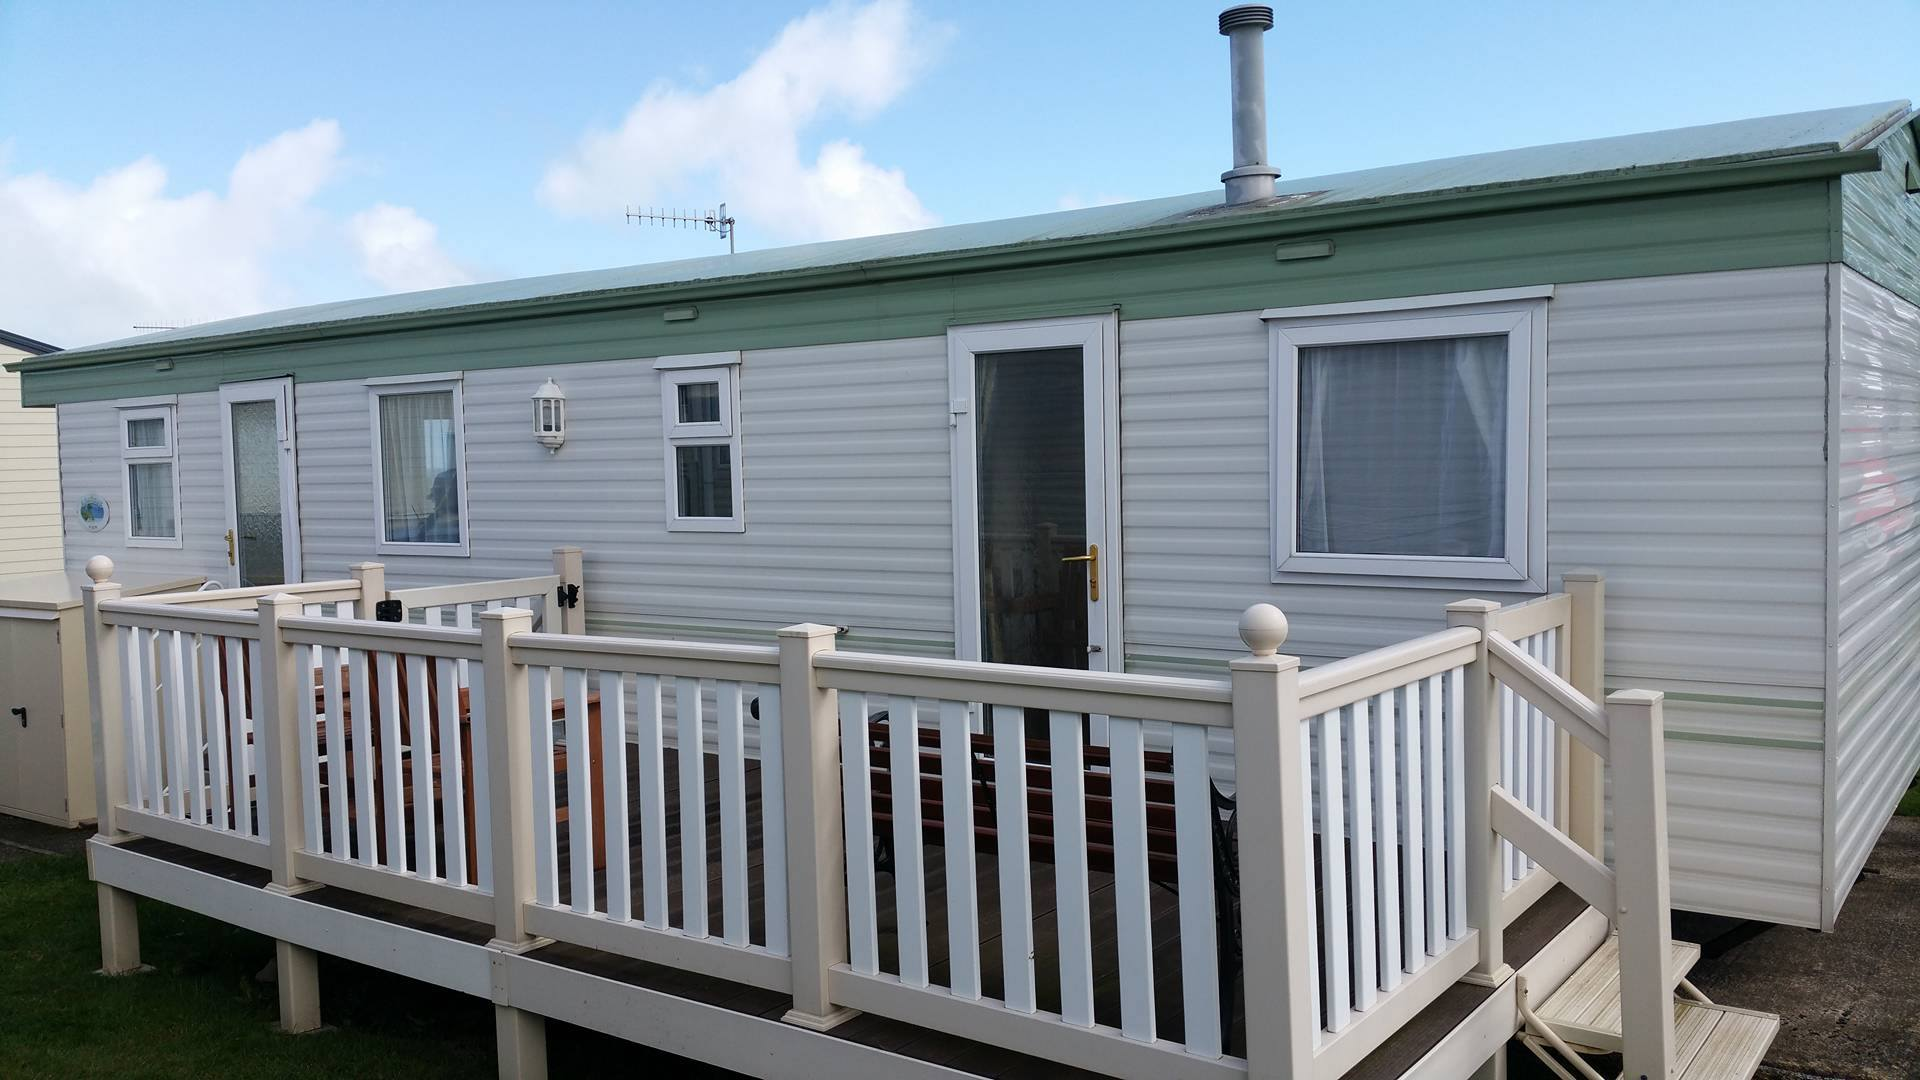 *045* Cayton Bay Holiday Park, Scarborough